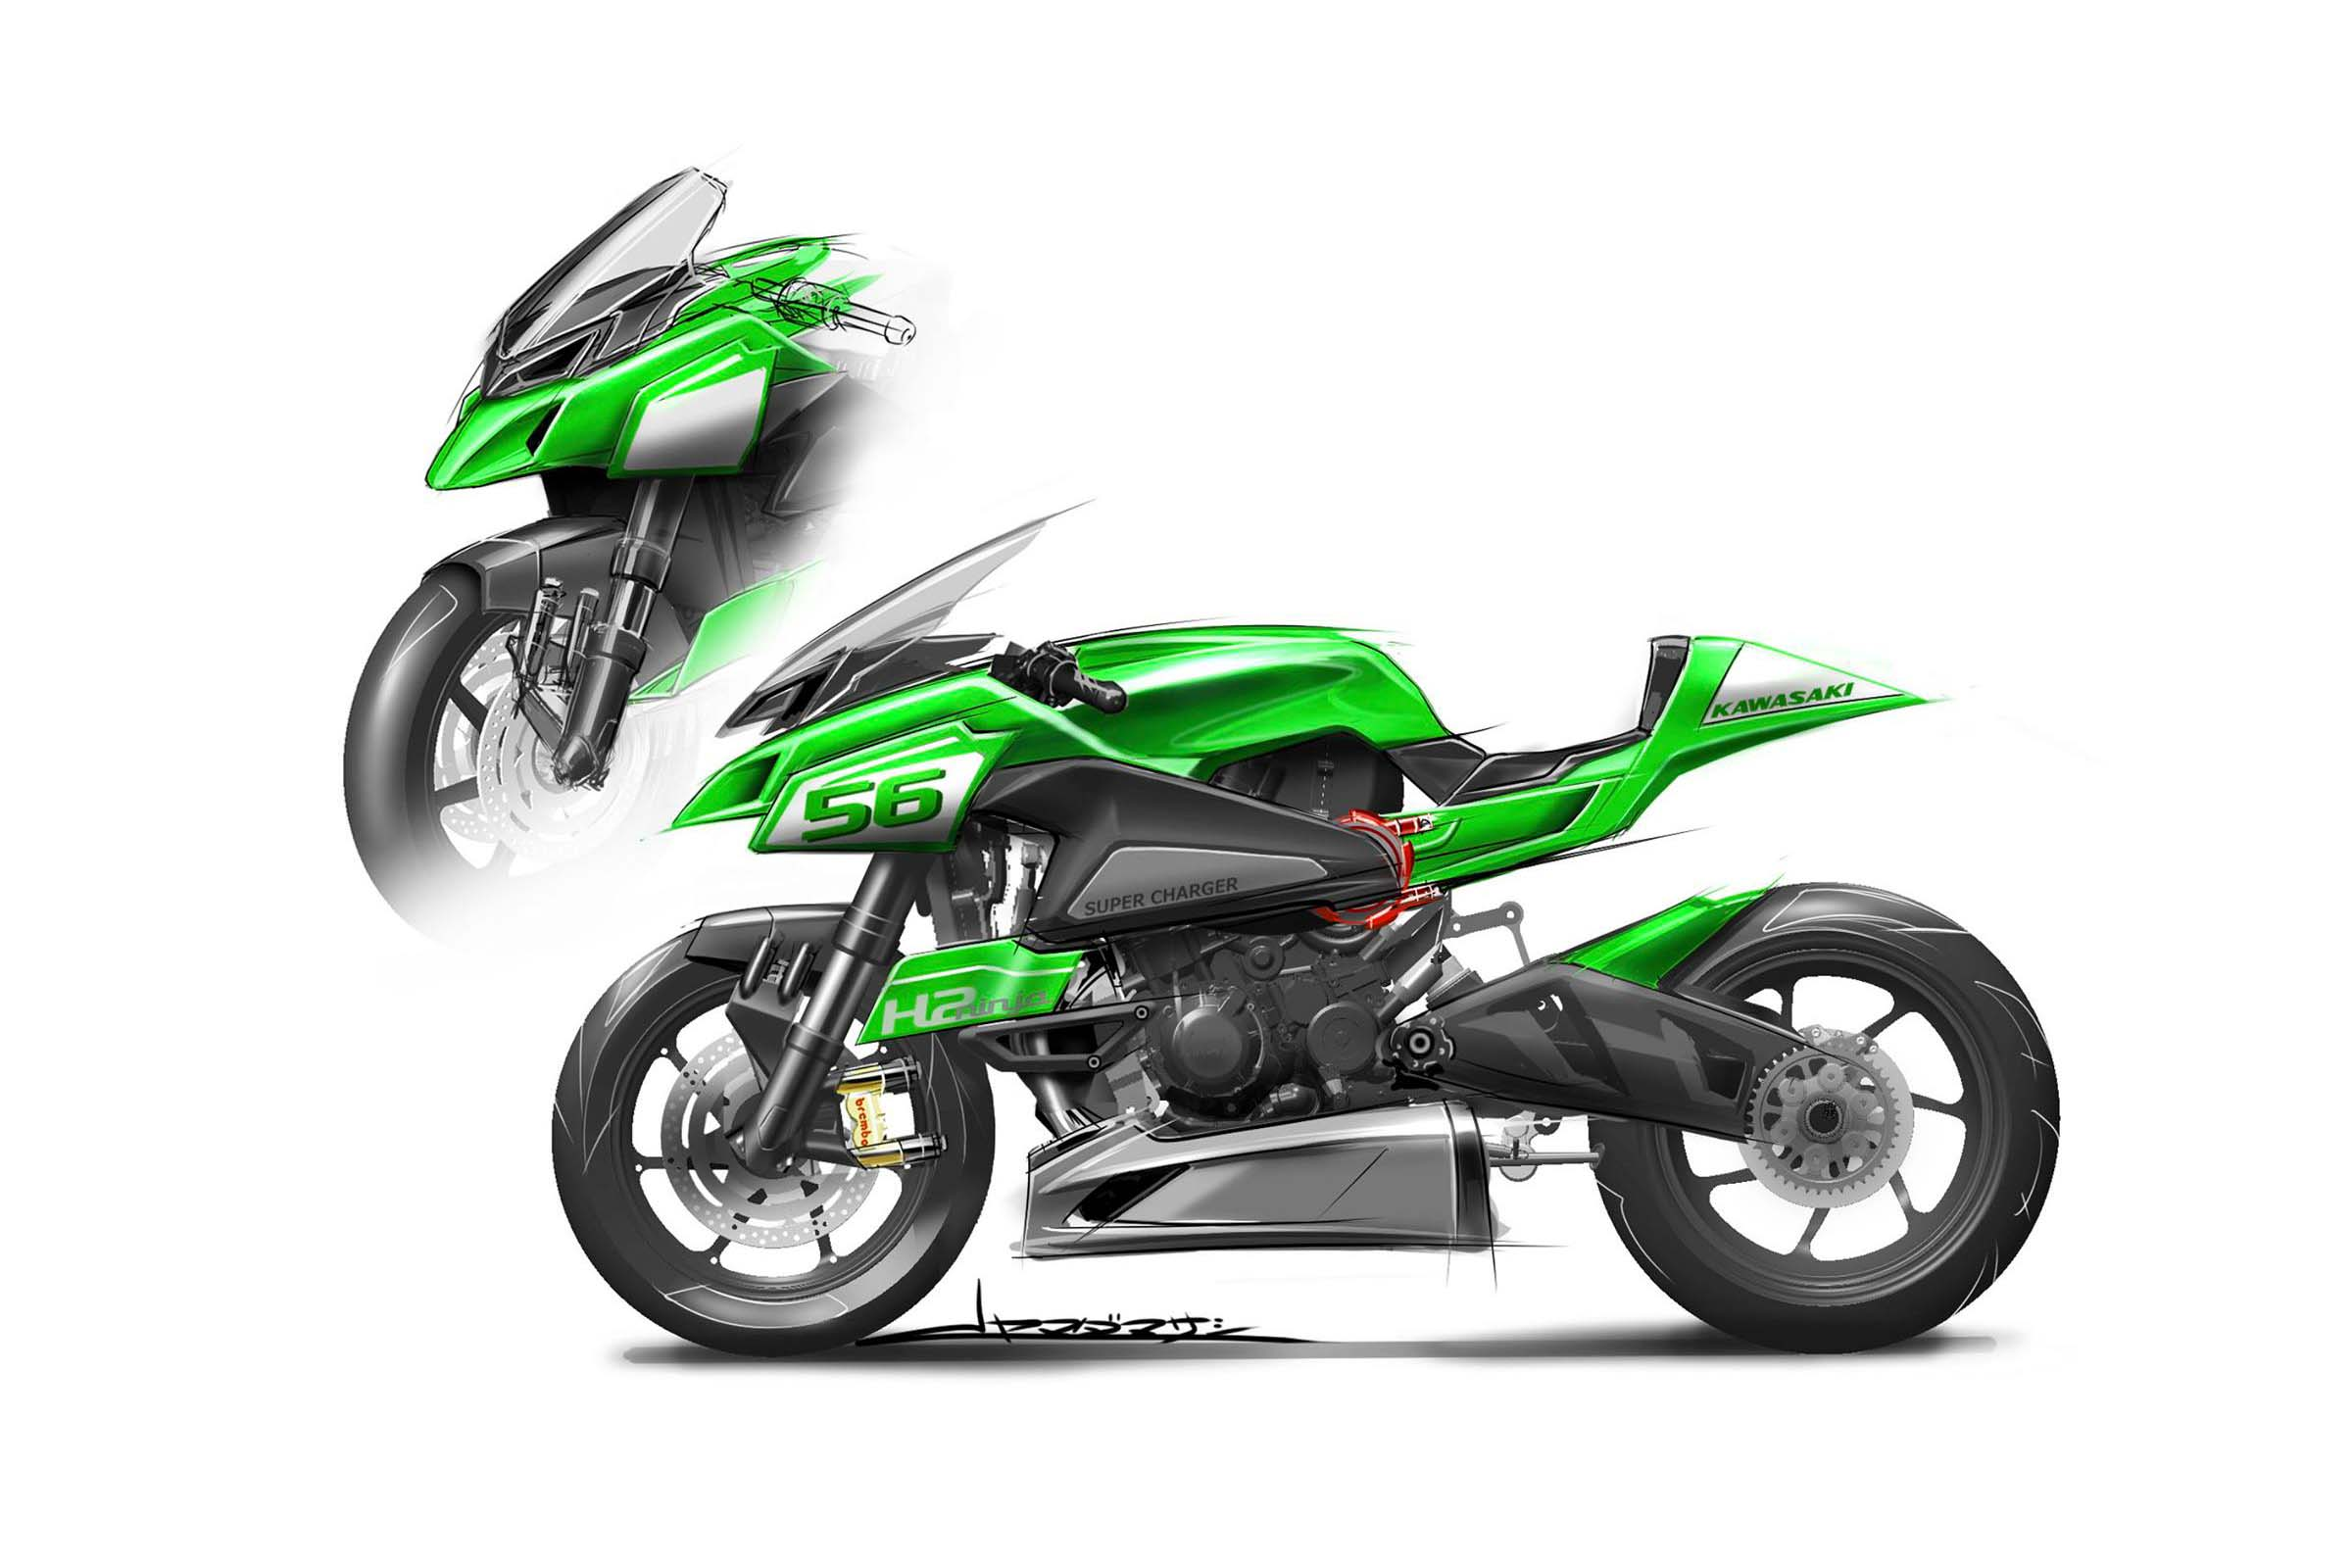 This Is What The Kawasaki Ninja H2 Could Have Looked Like